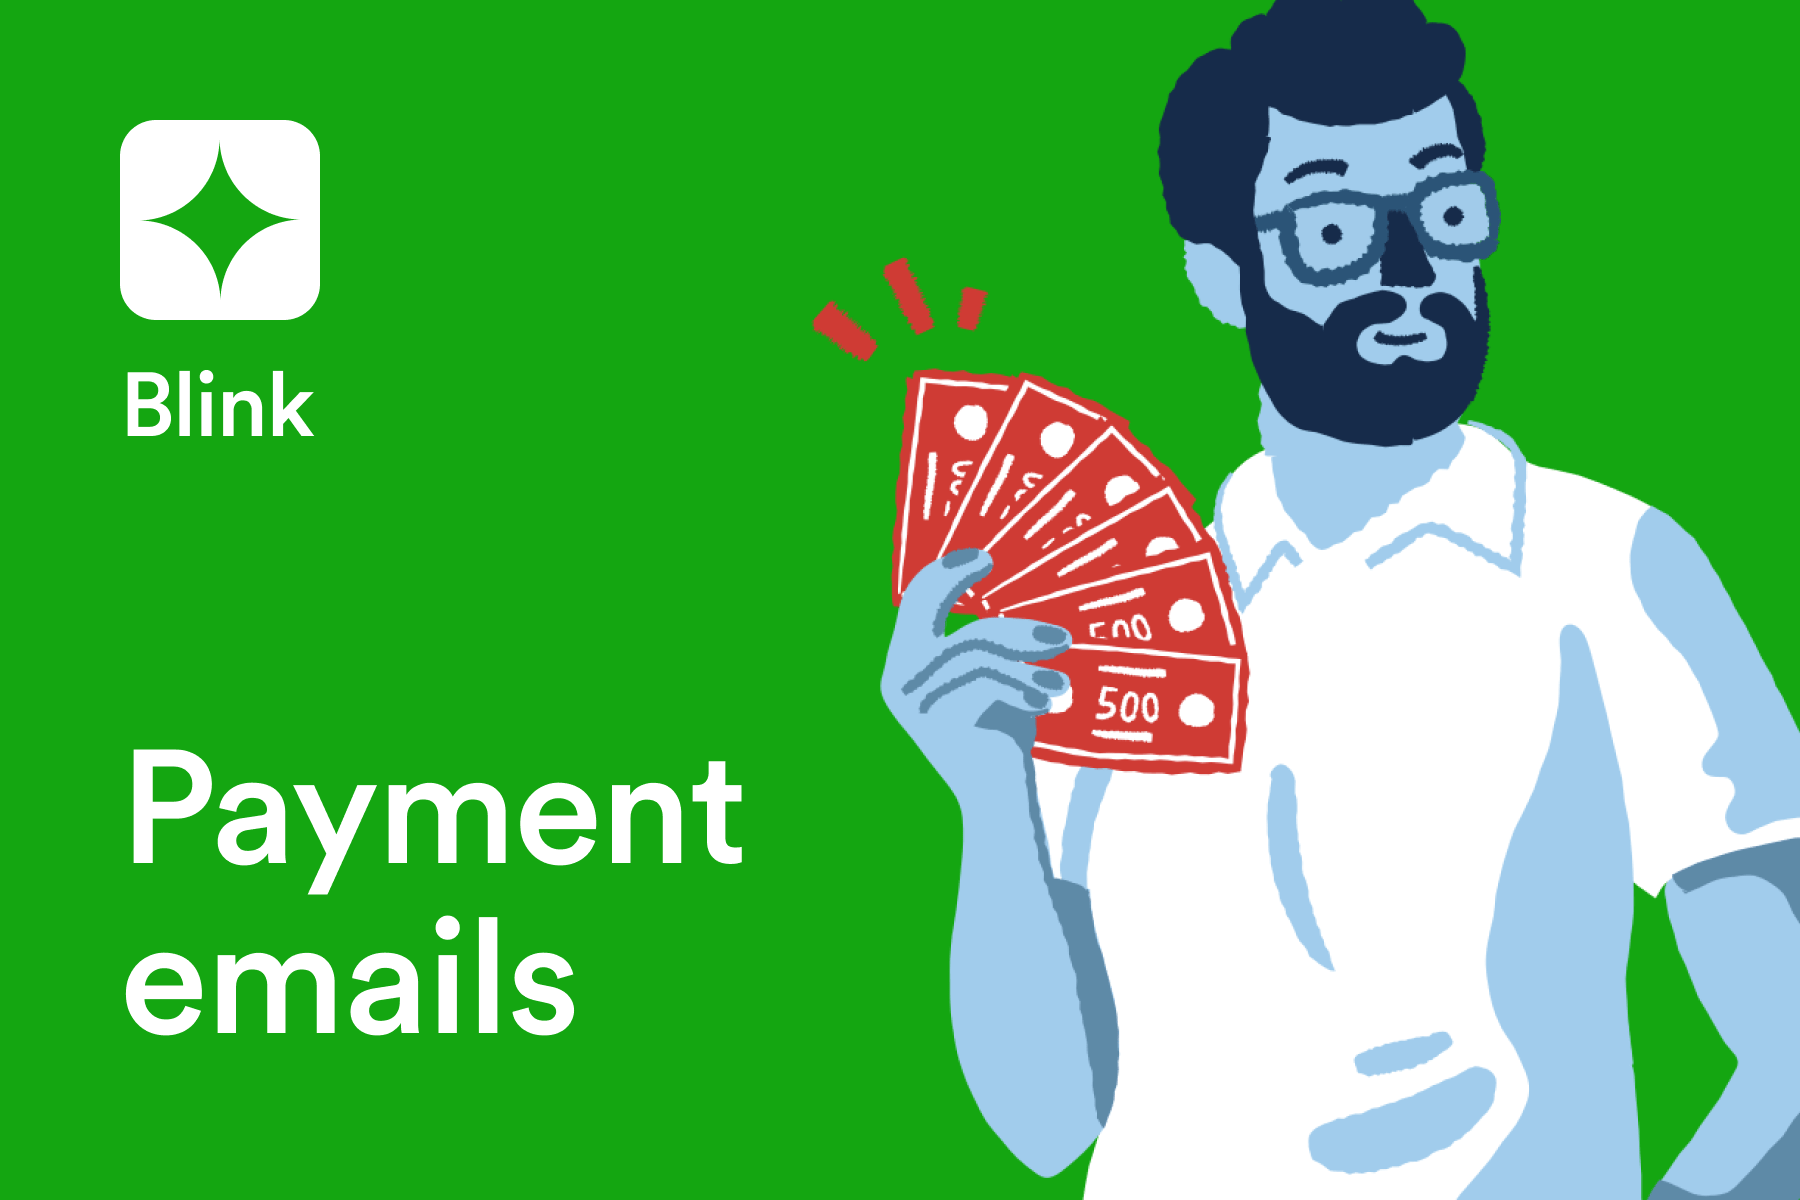 Blink: Payments